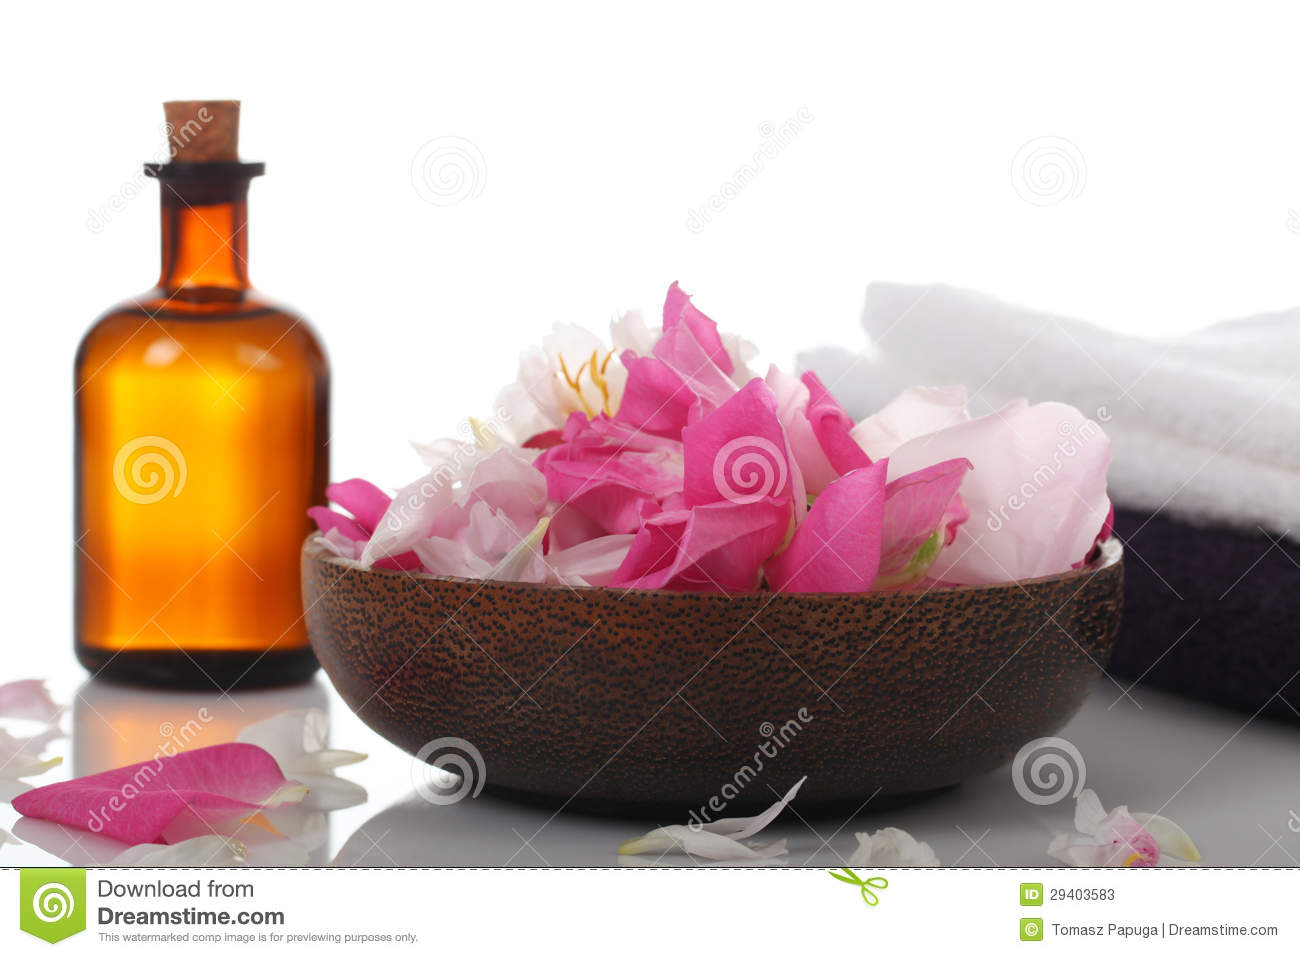 Aromatherapy and Massage Oil